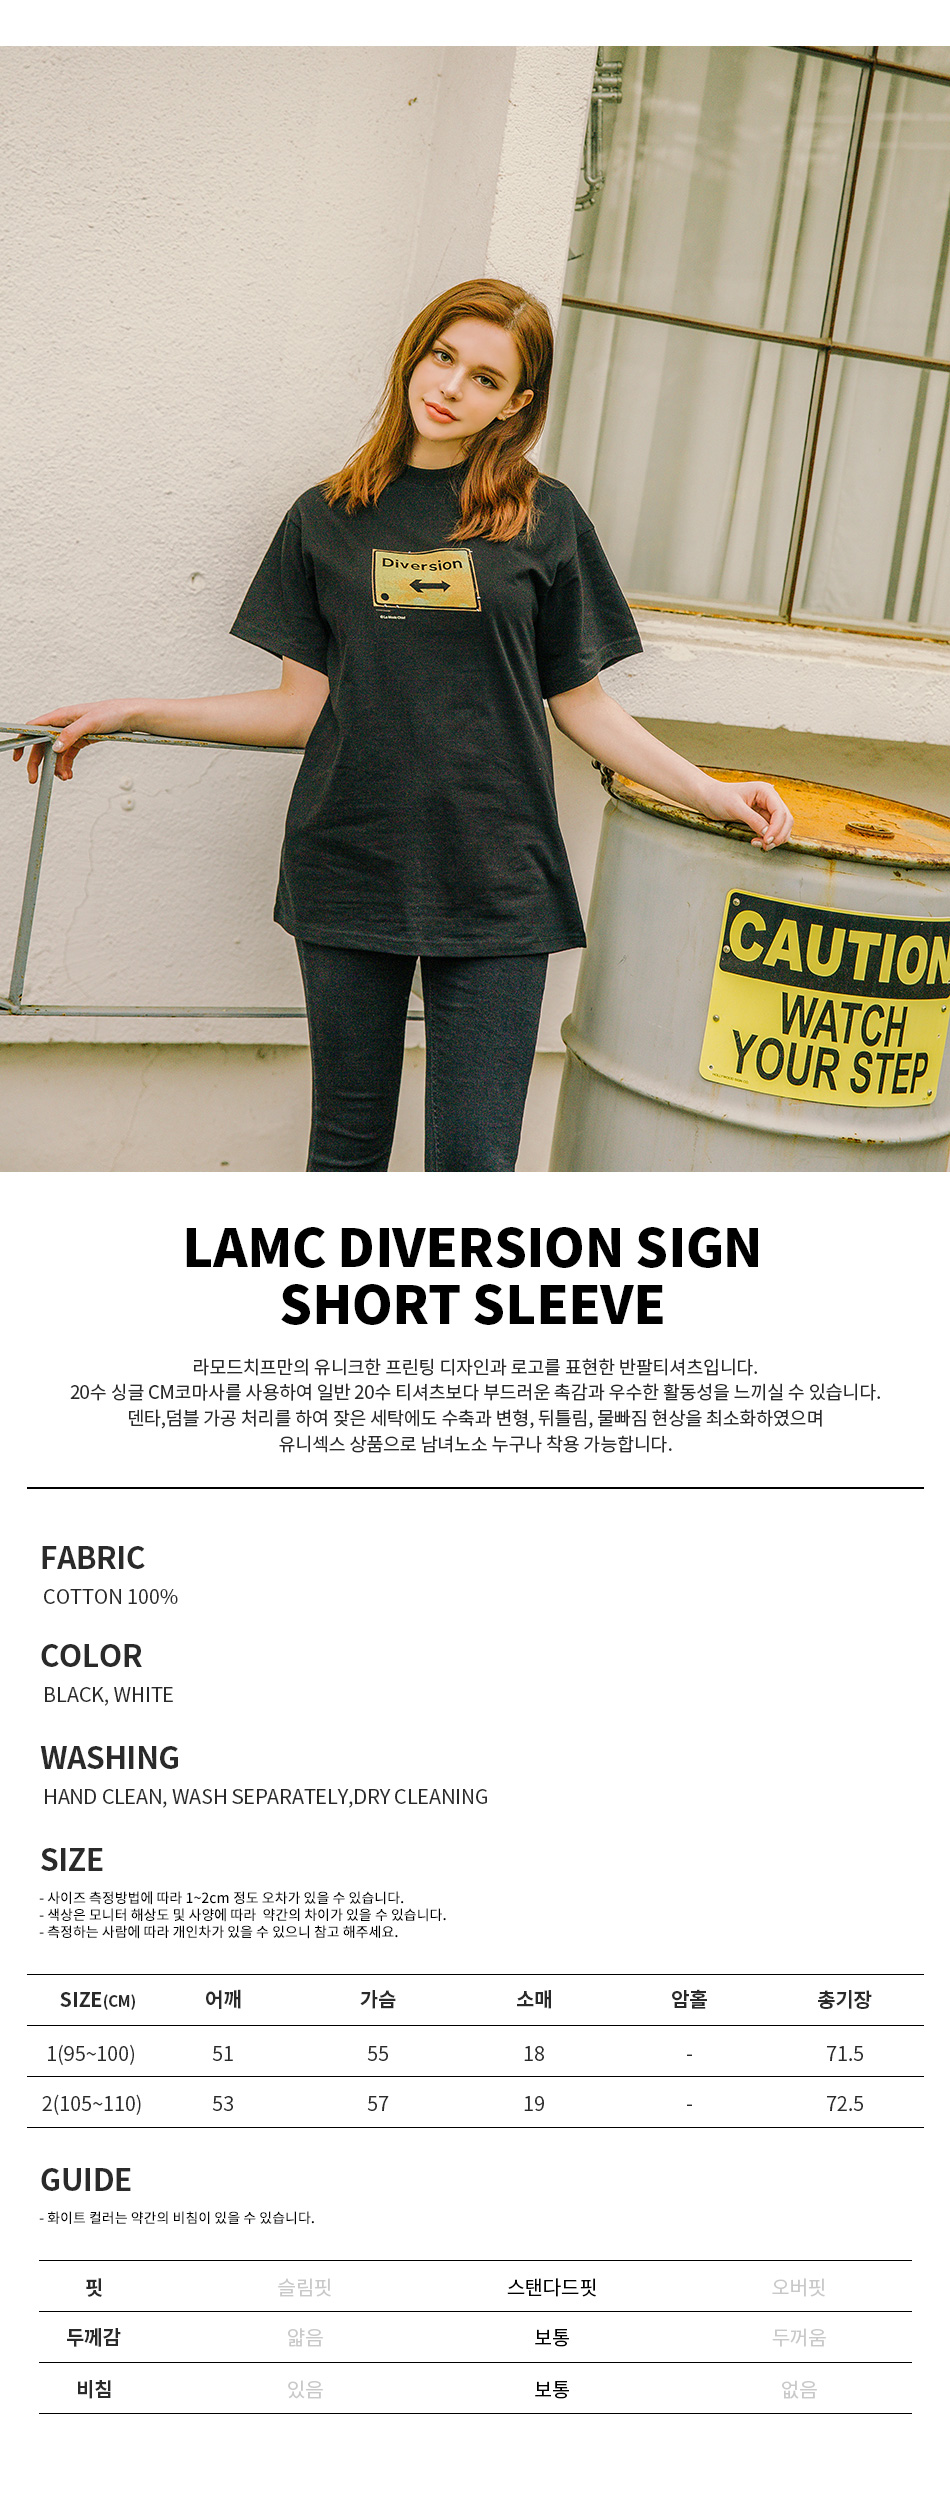 라모드치프 LAMC DIVERSION SIGN SHORT SLEEVE (BLACK)